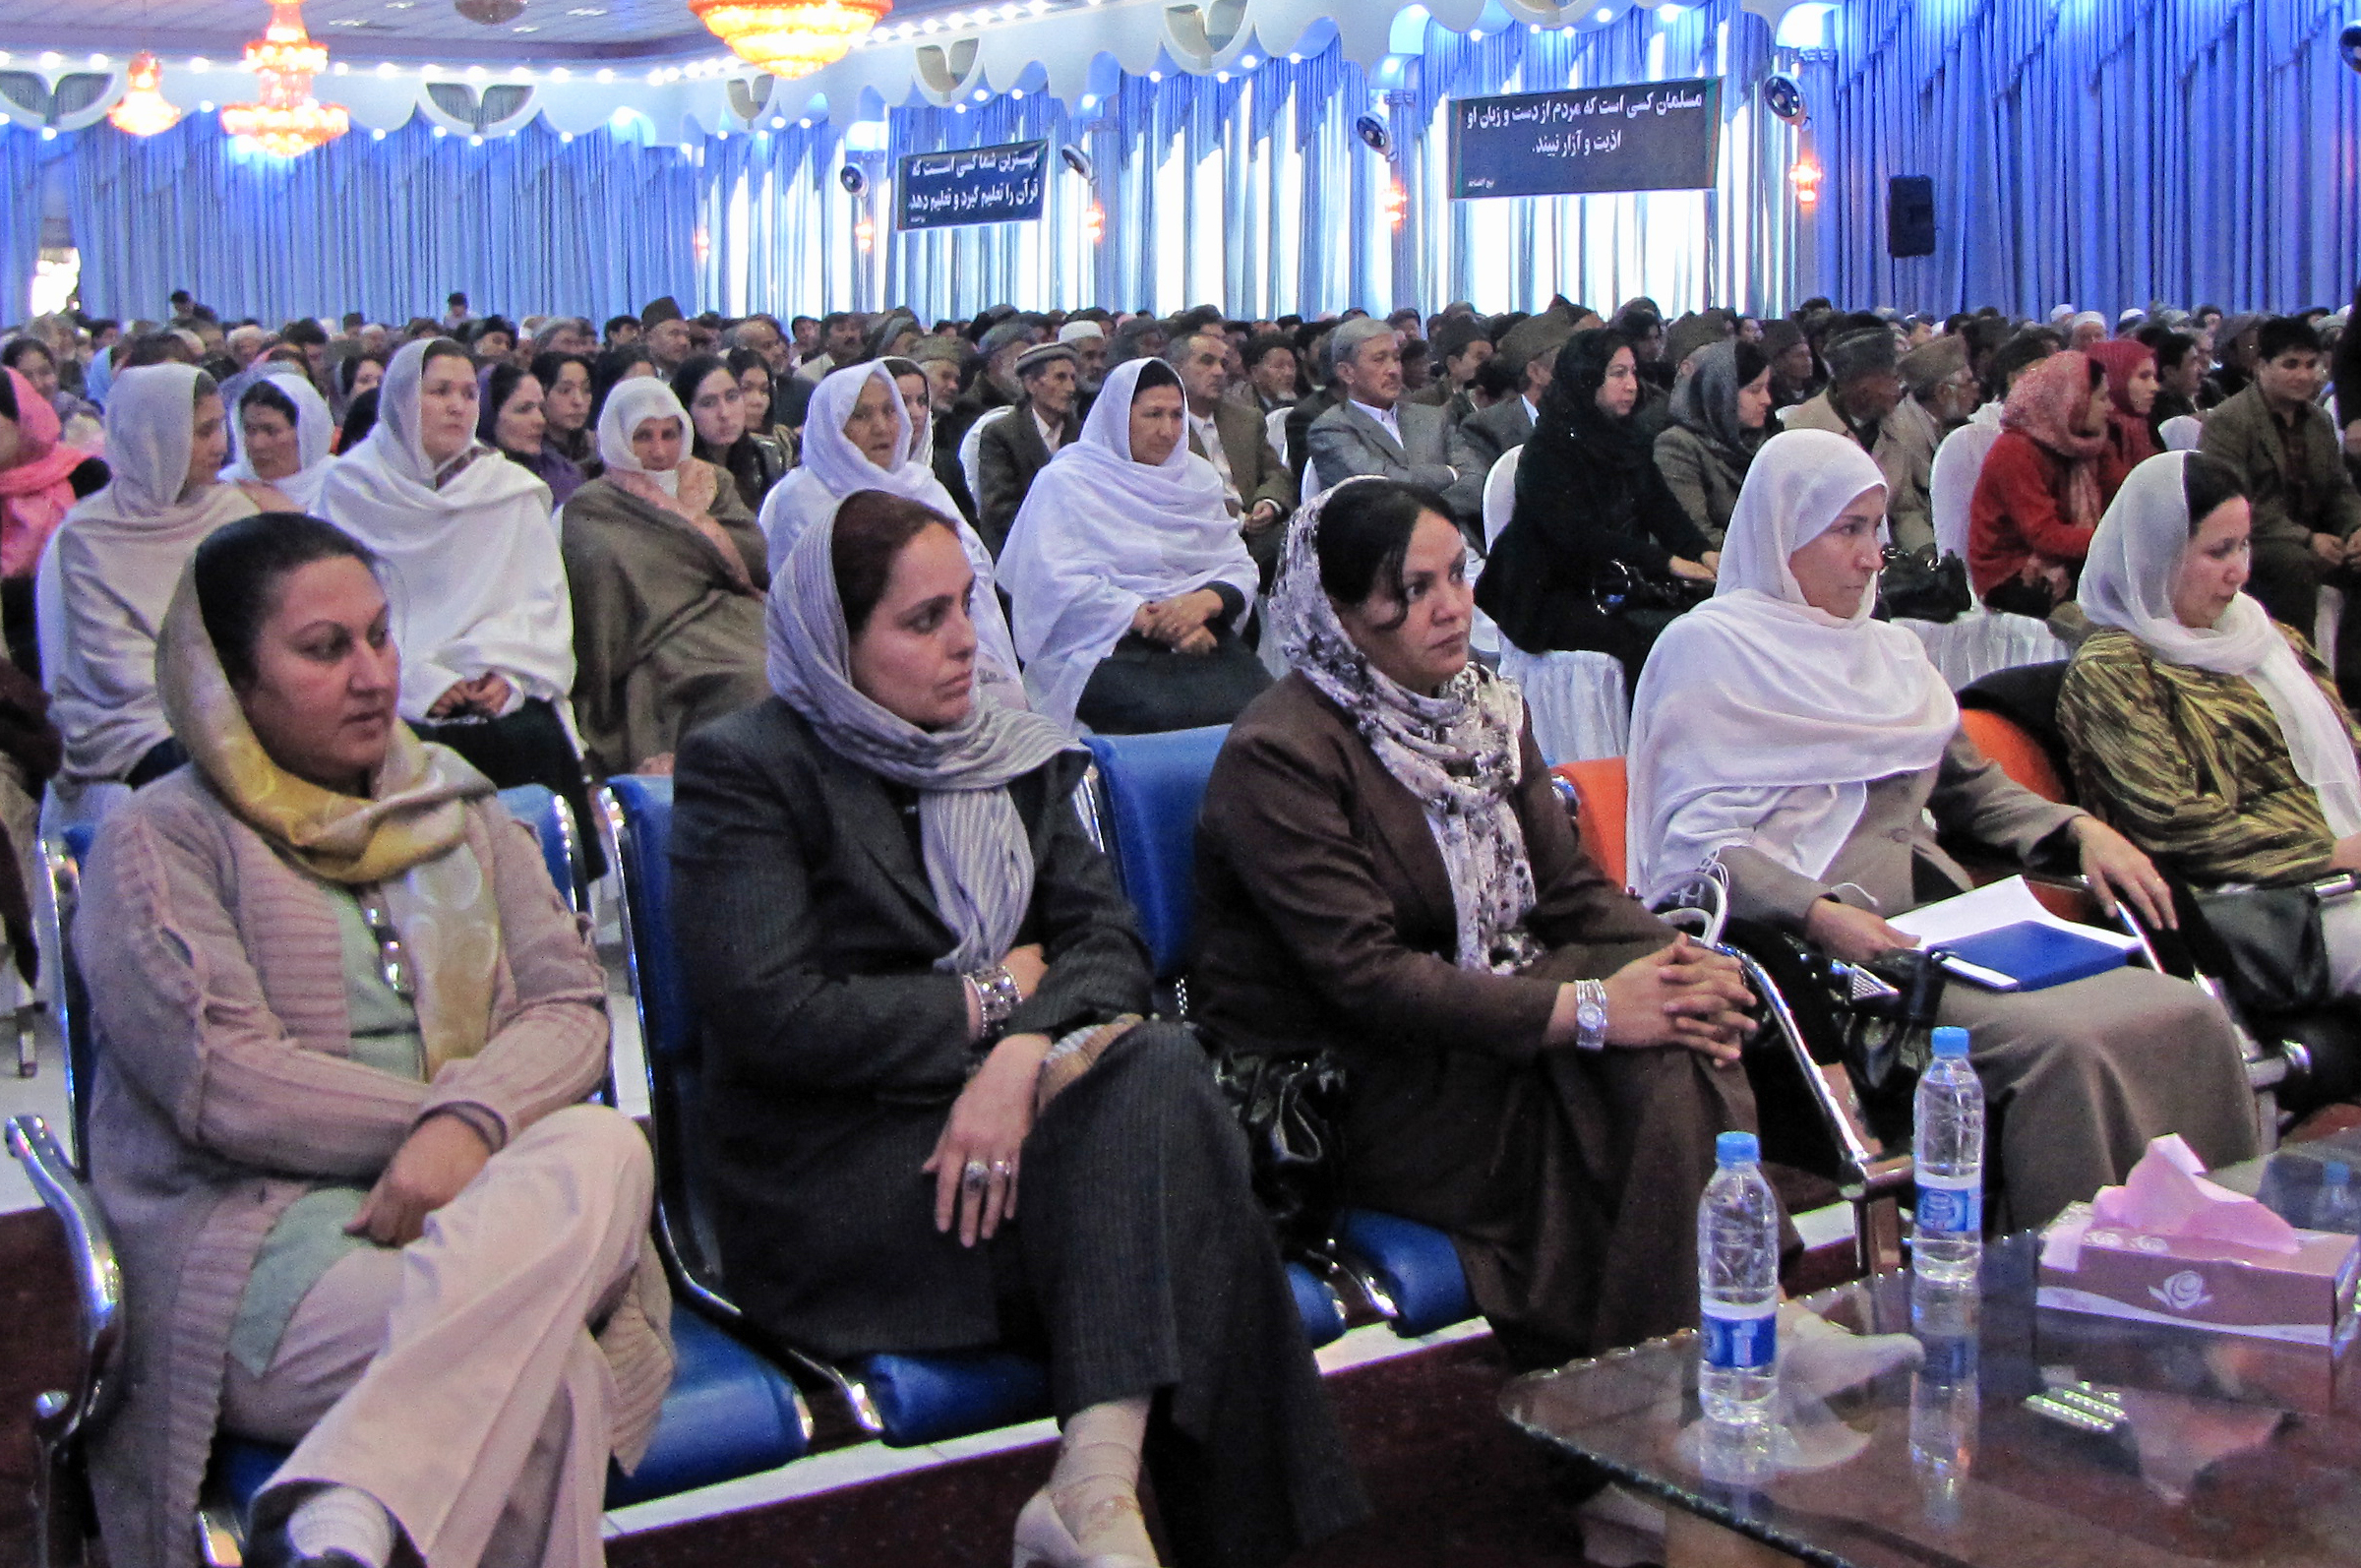 Some 800 people – women and men – gathered to commemorate <i>Mowlud-e-Sharif</i> in Kabul. Similar events were hosted by Jamati institutions in other parts of Afghanistan. Photo: Courtesy of the Ismaili Council for Afghanistan